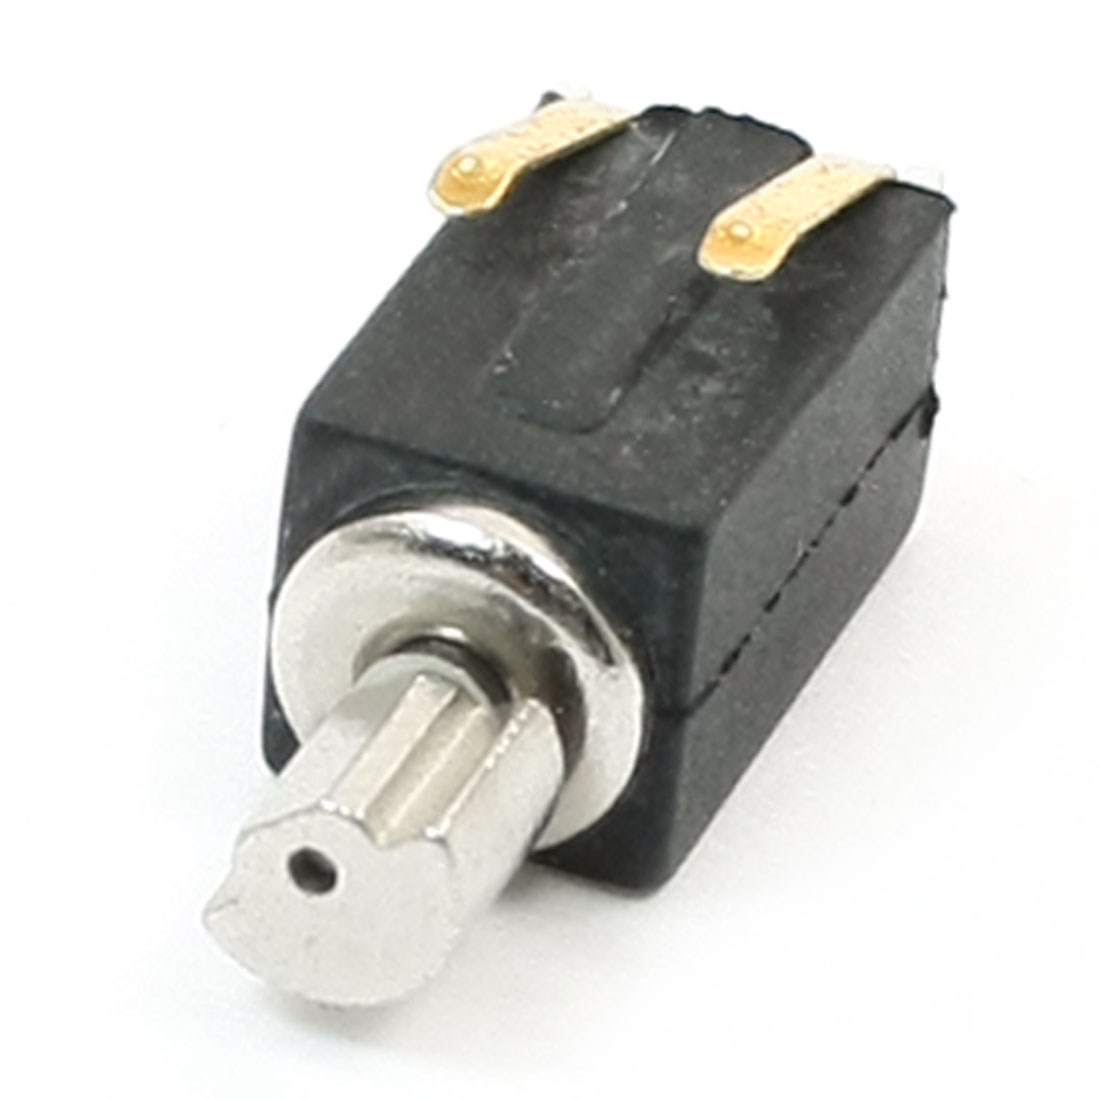 10000RPM-Speed-DC-3V-7mm-x-12mm-Micro-Vibration-Motor-Black